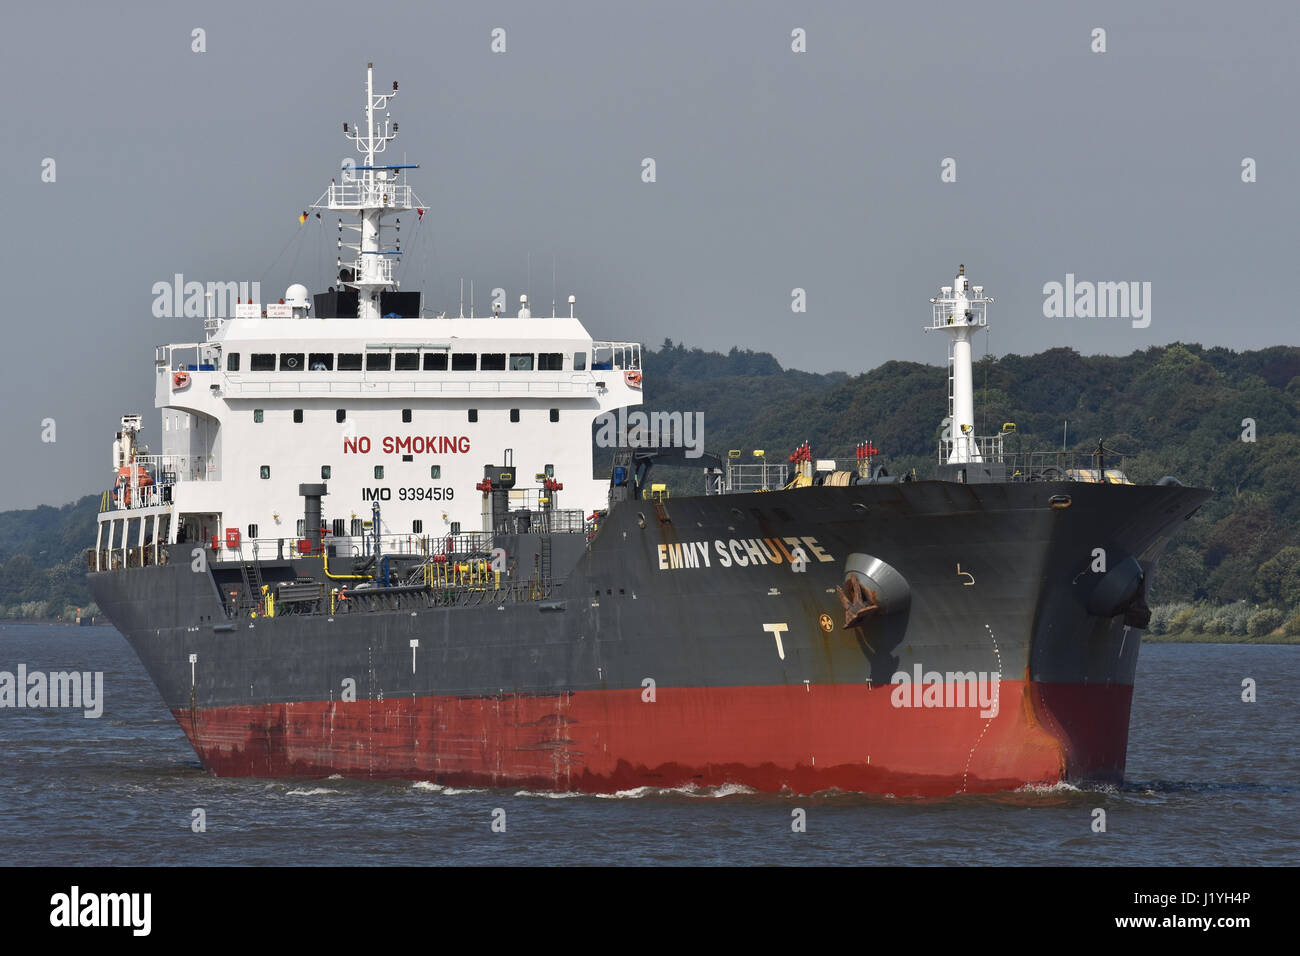 Emmy Schulte inbound port of Hamburg Stock Photo